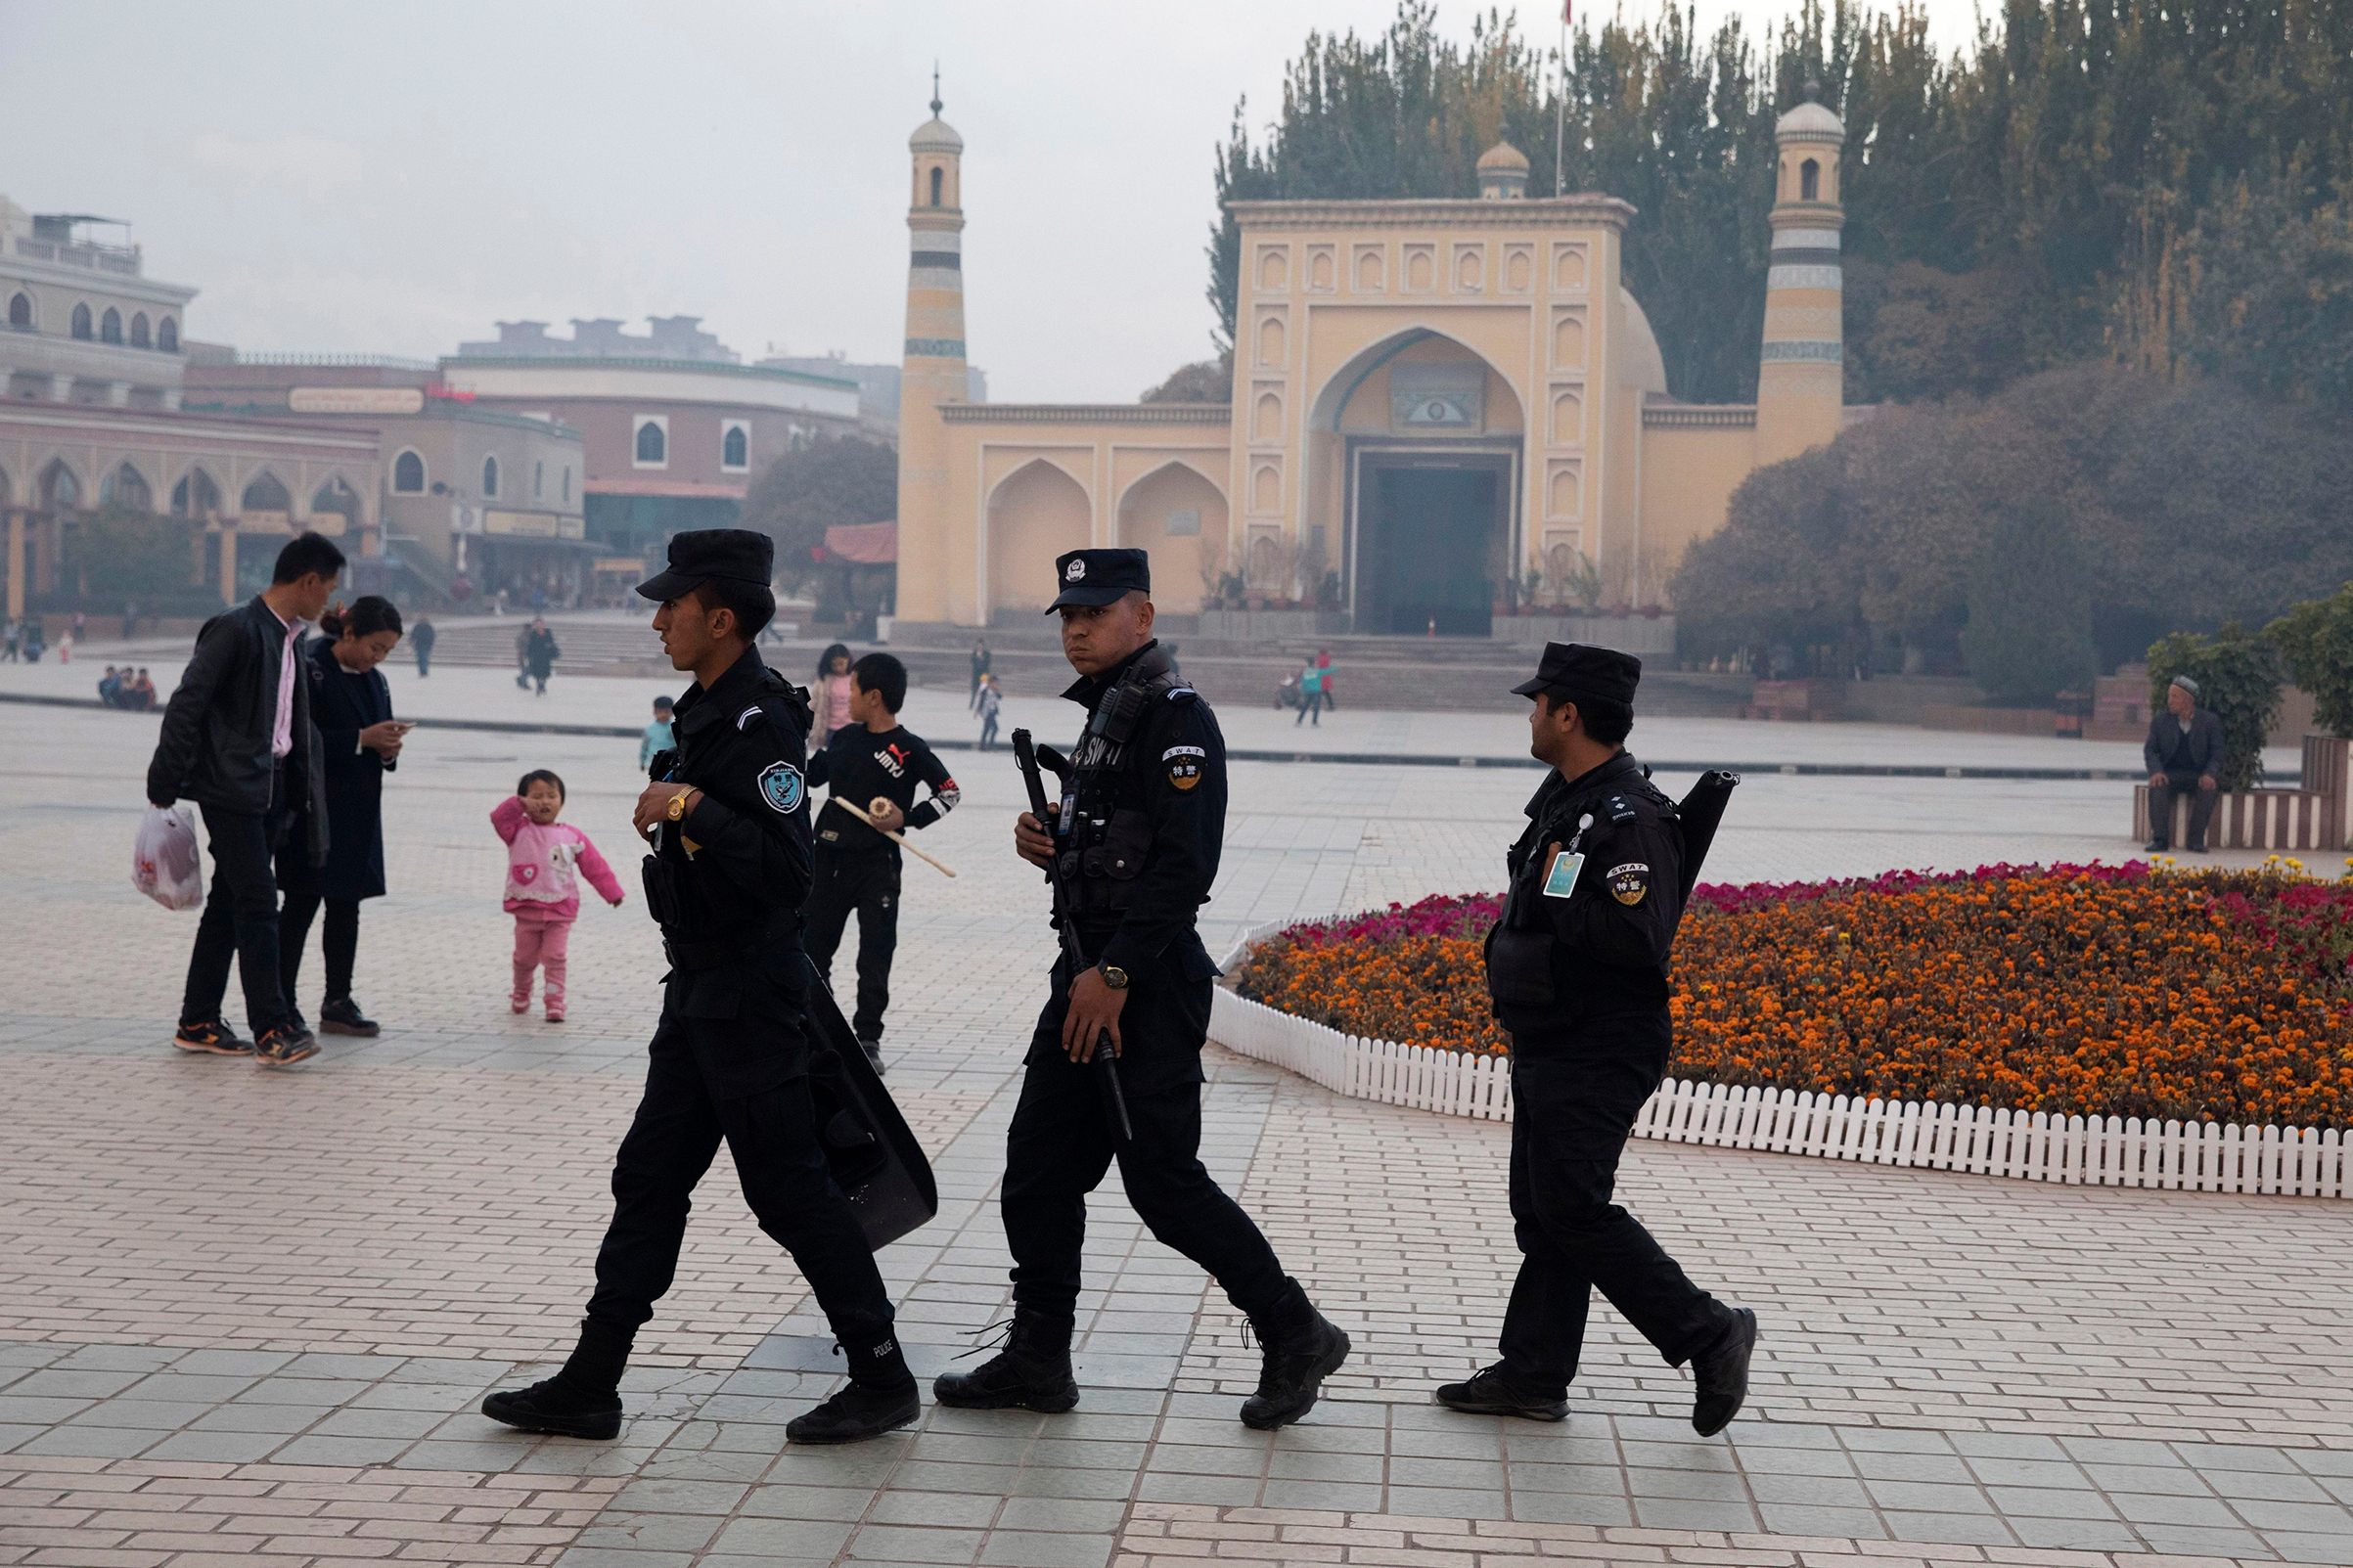 Security personnel patrol near the Id Kah Mosque in western China's Xinjiang region on Nov. 4